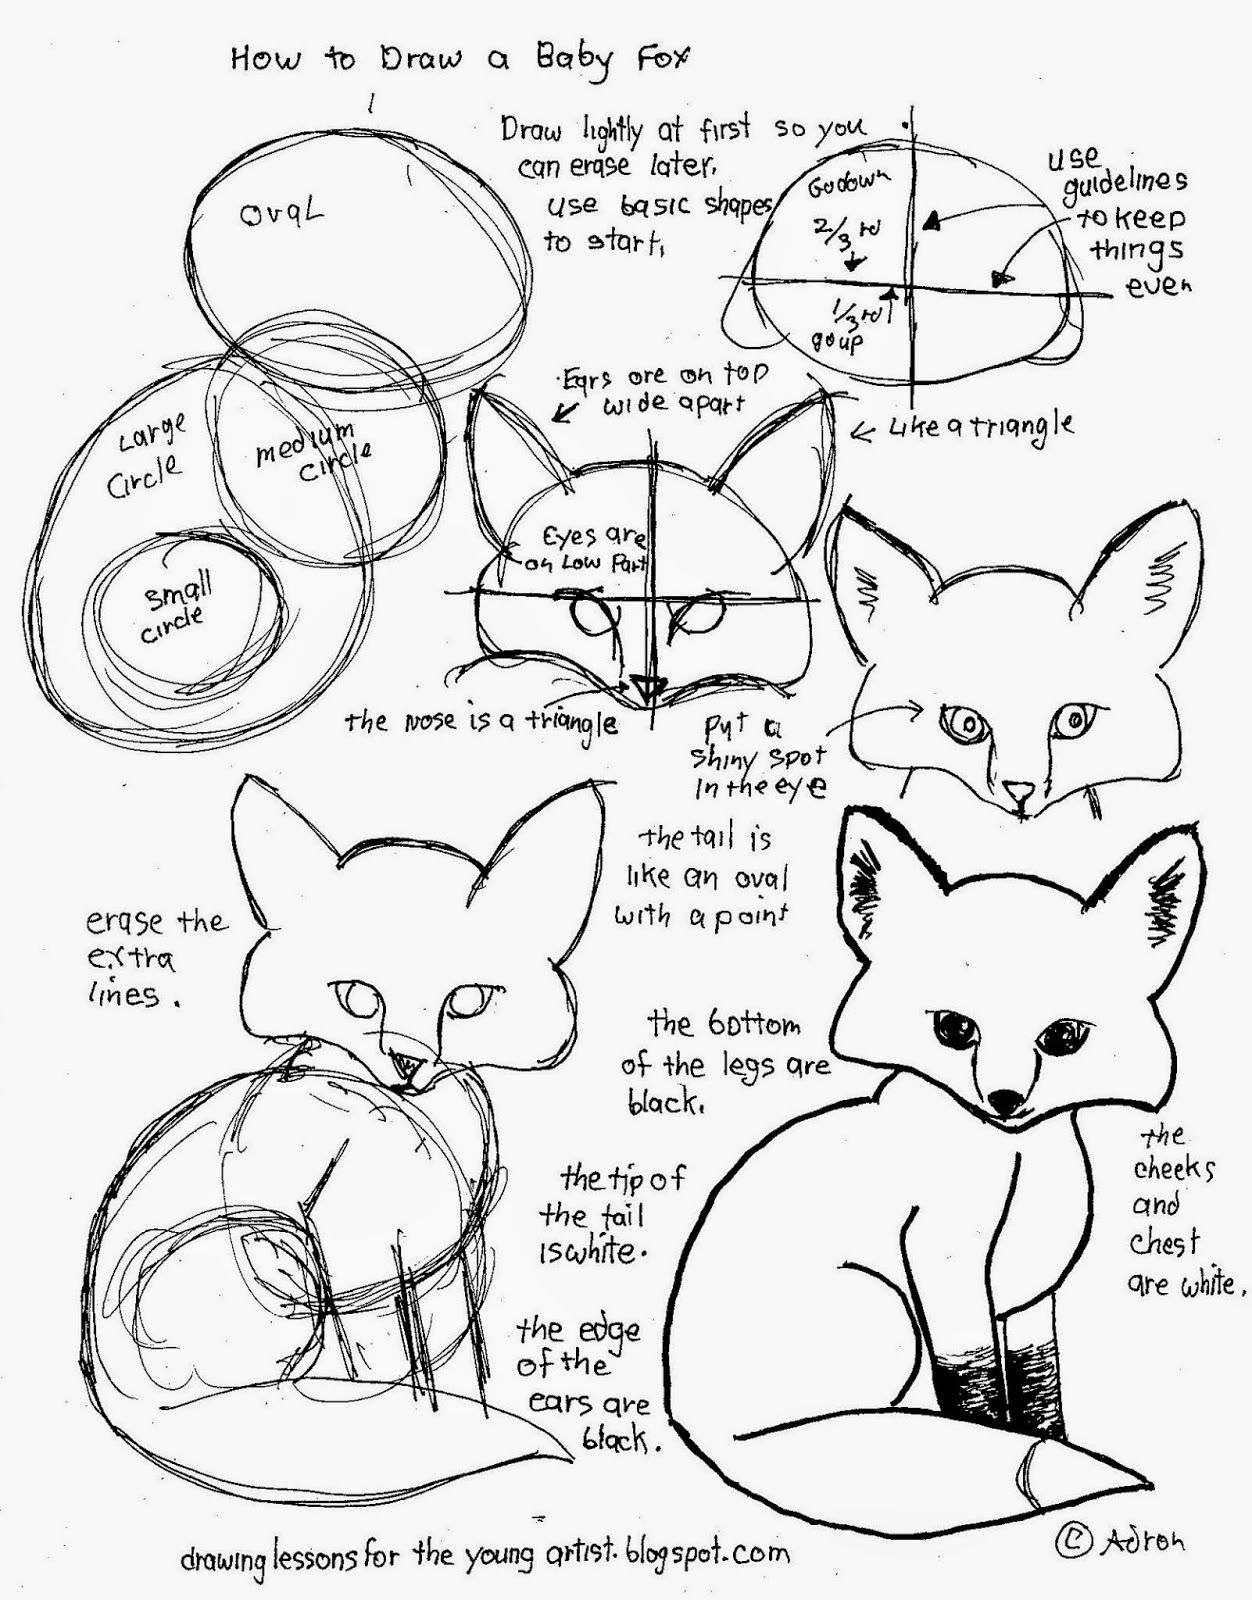 How To Draw Worksheets For The Young Artist: How To Draw A Baby Fox - Free Printable Drawing Worksheets